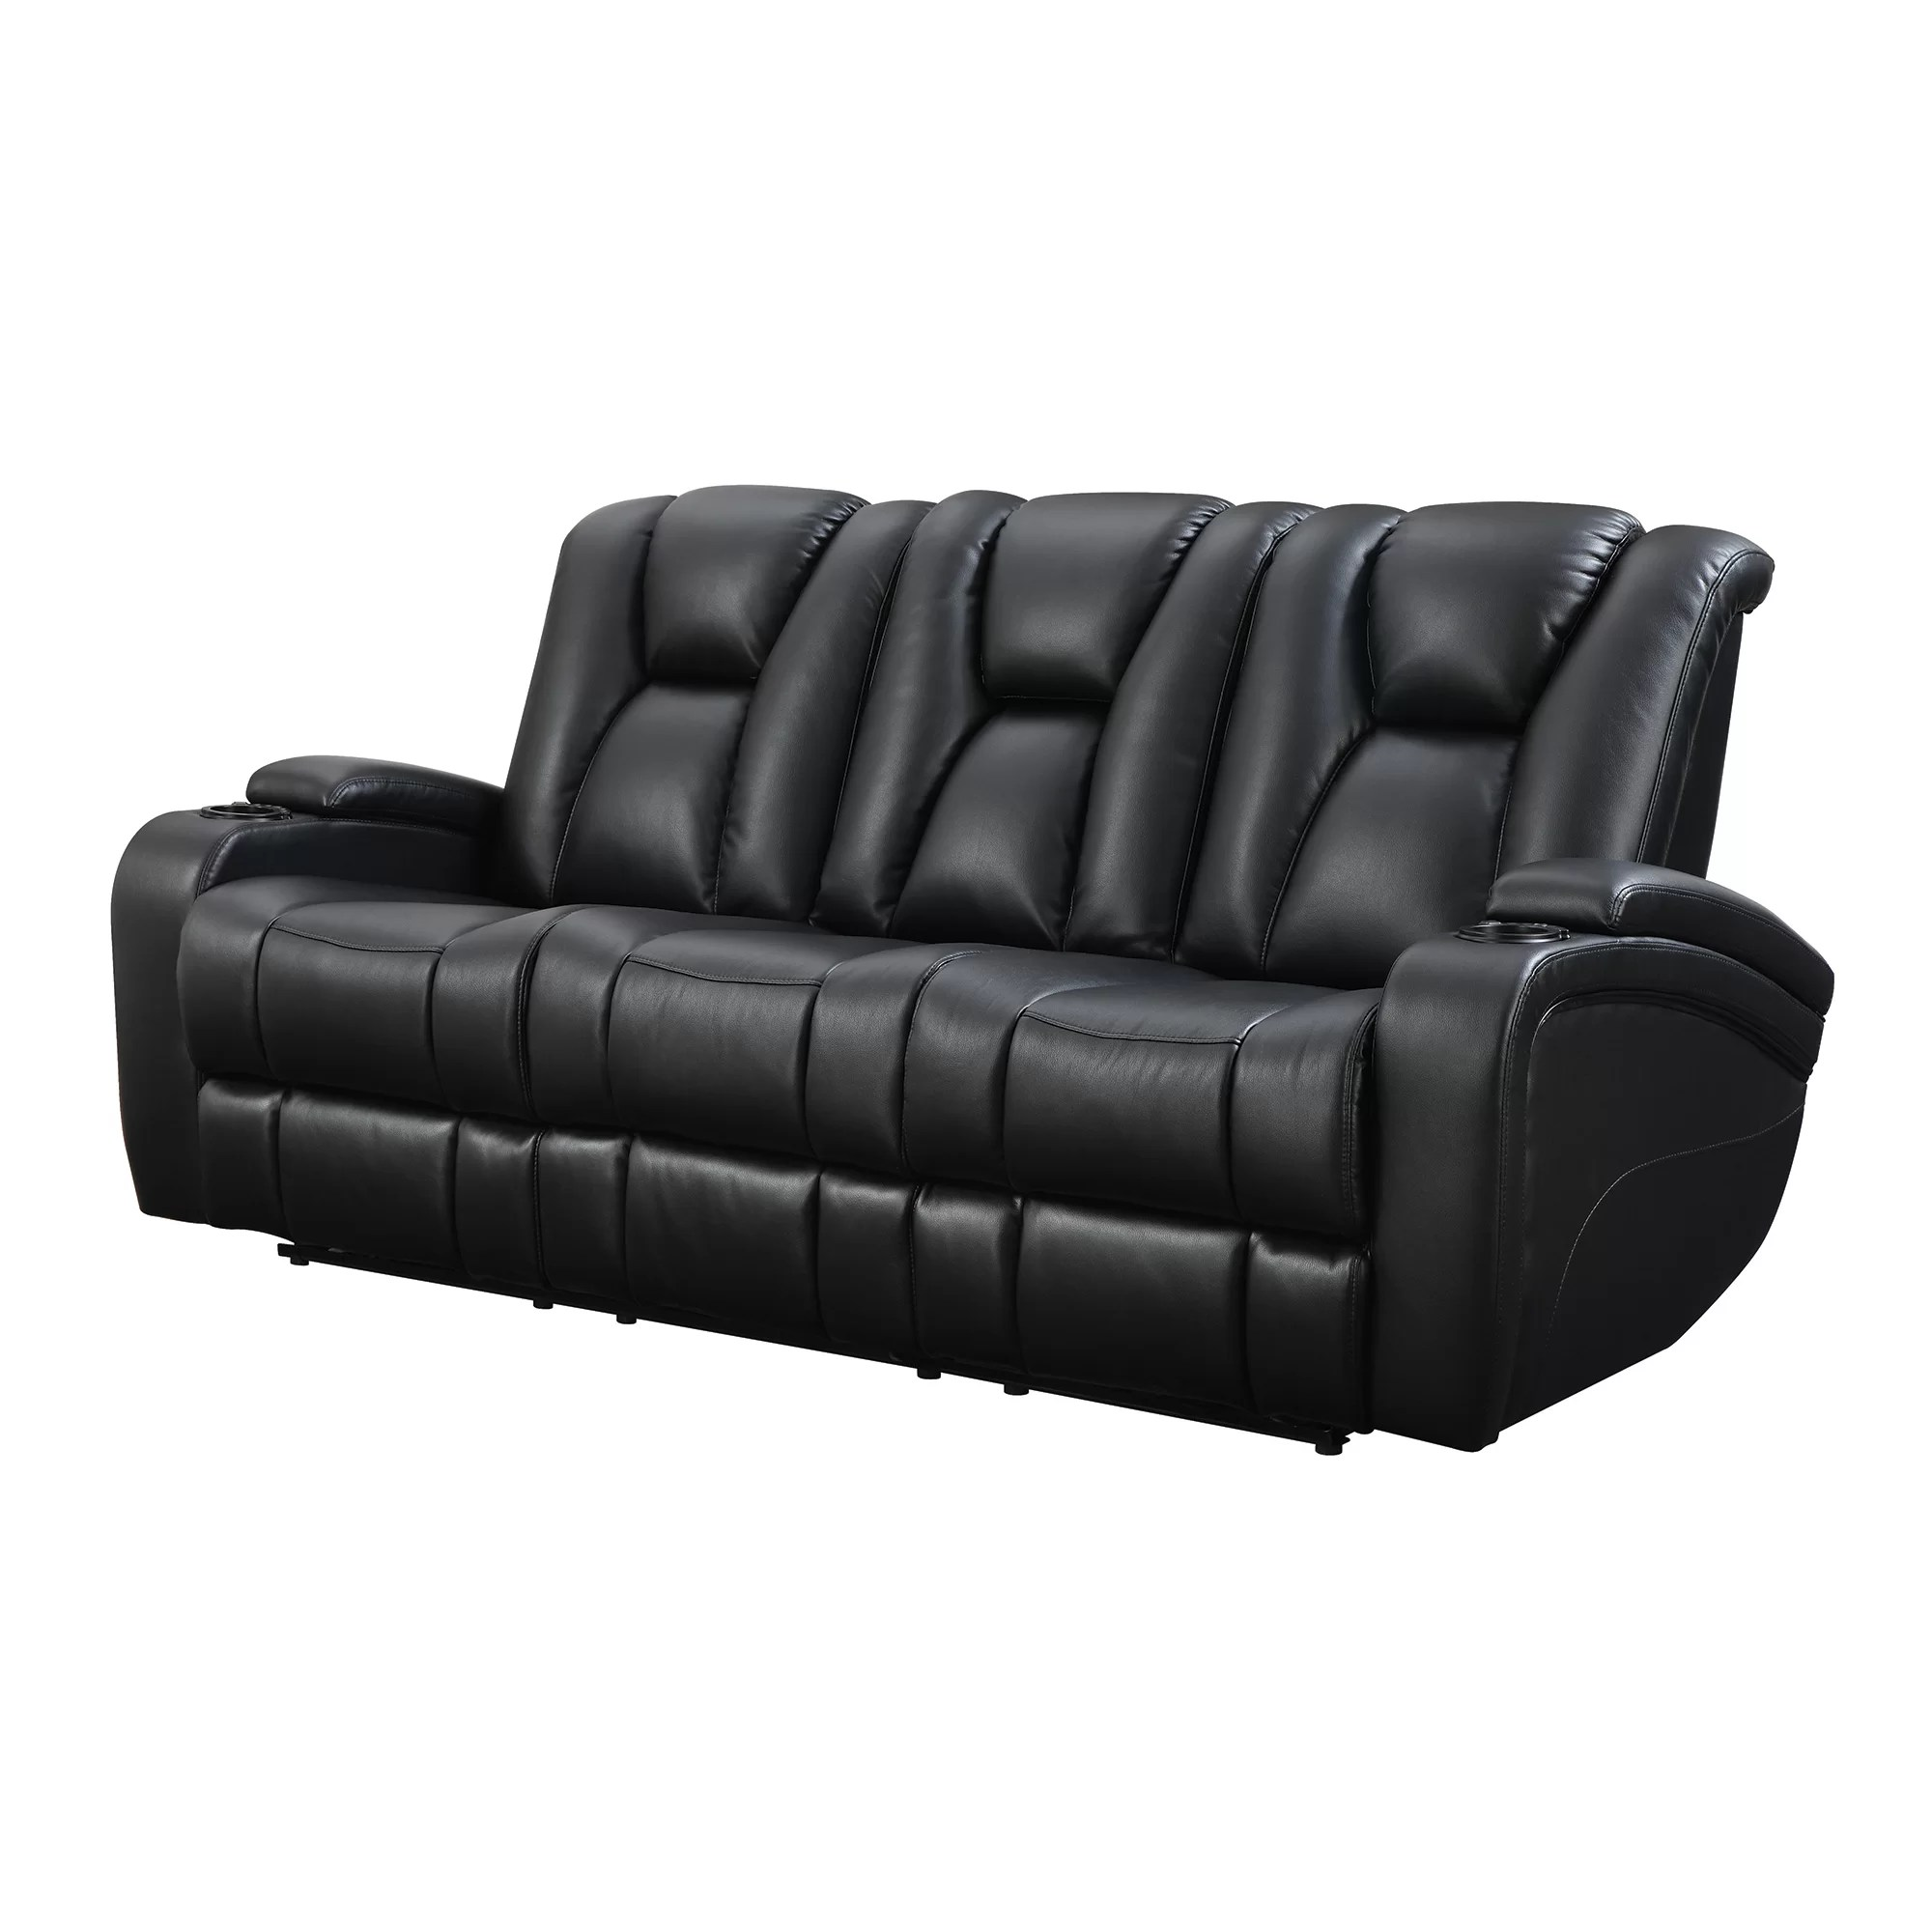 Sofology Quebec Csl Leather Recliner Sofa